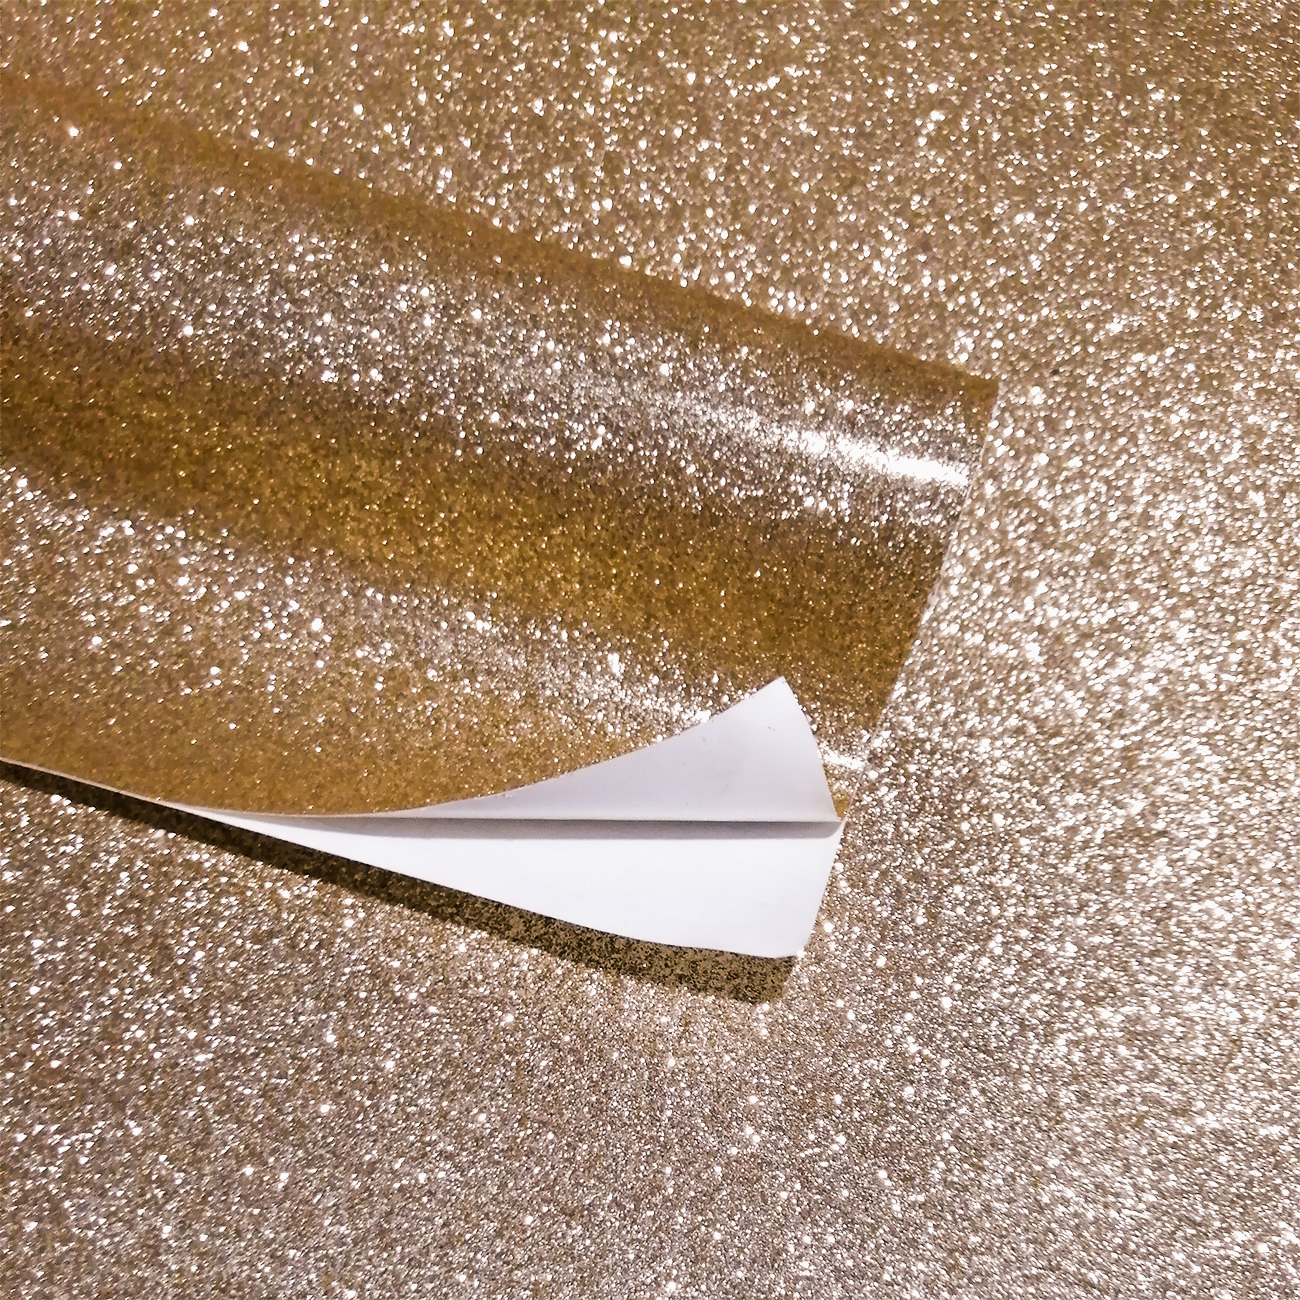 Self Adhesive Glitter Wallpaper Textured  Background Waterproof Contact Paper Peel And Sticker Bling Wallcovering